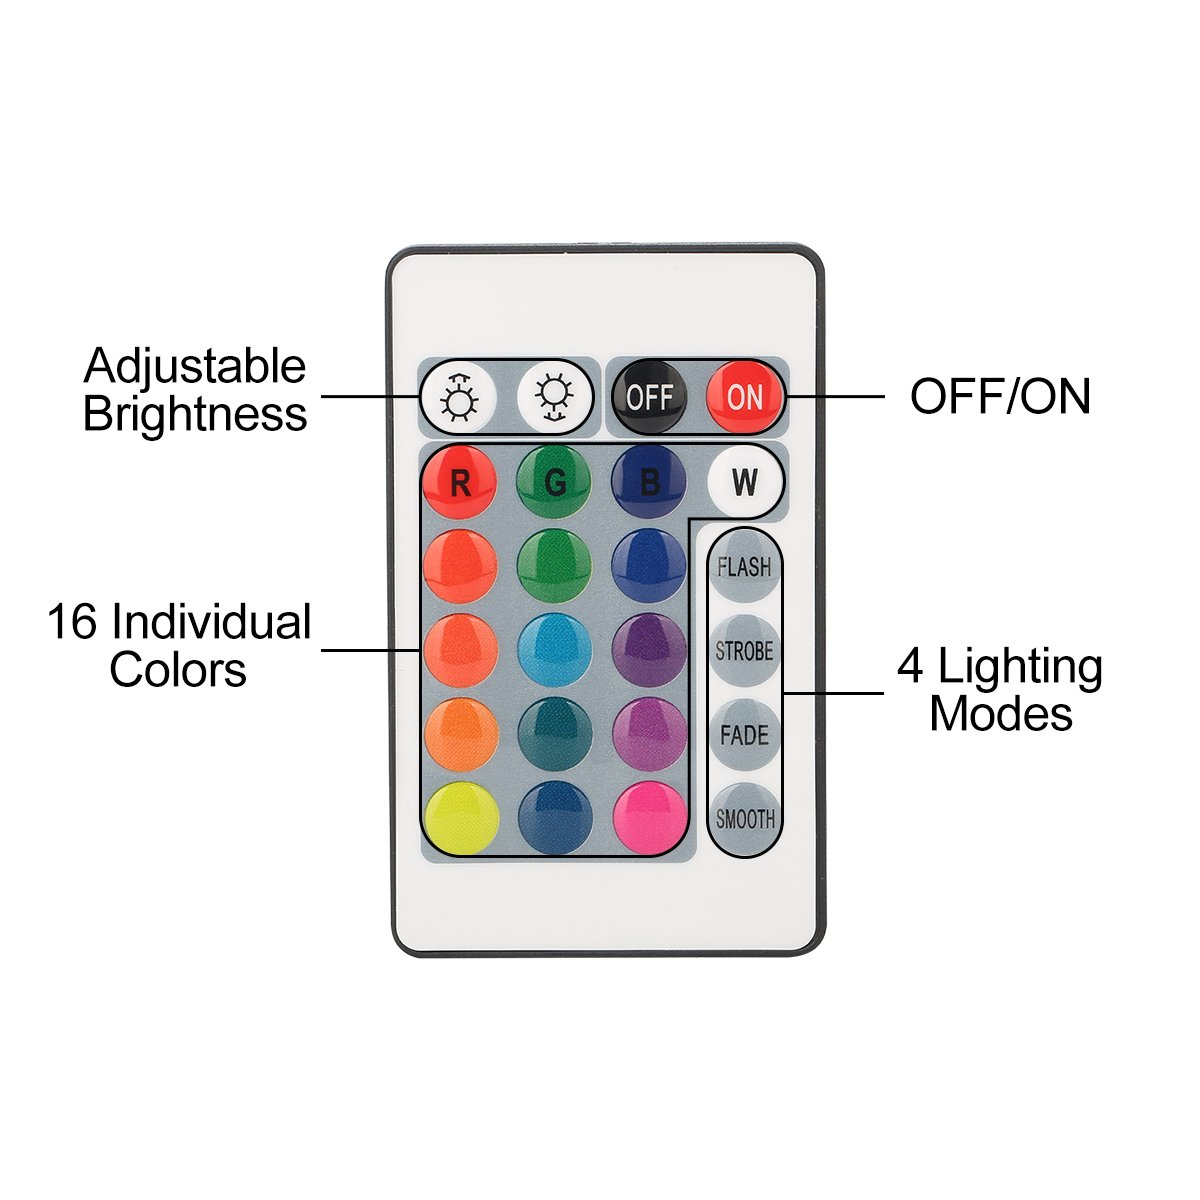 YiHong WiFi LED Controller for Strip Lights Smart Controller with Remote for LED RGB Light Strip Compatible with Alexa Google Home by YIHONG (Image #4)